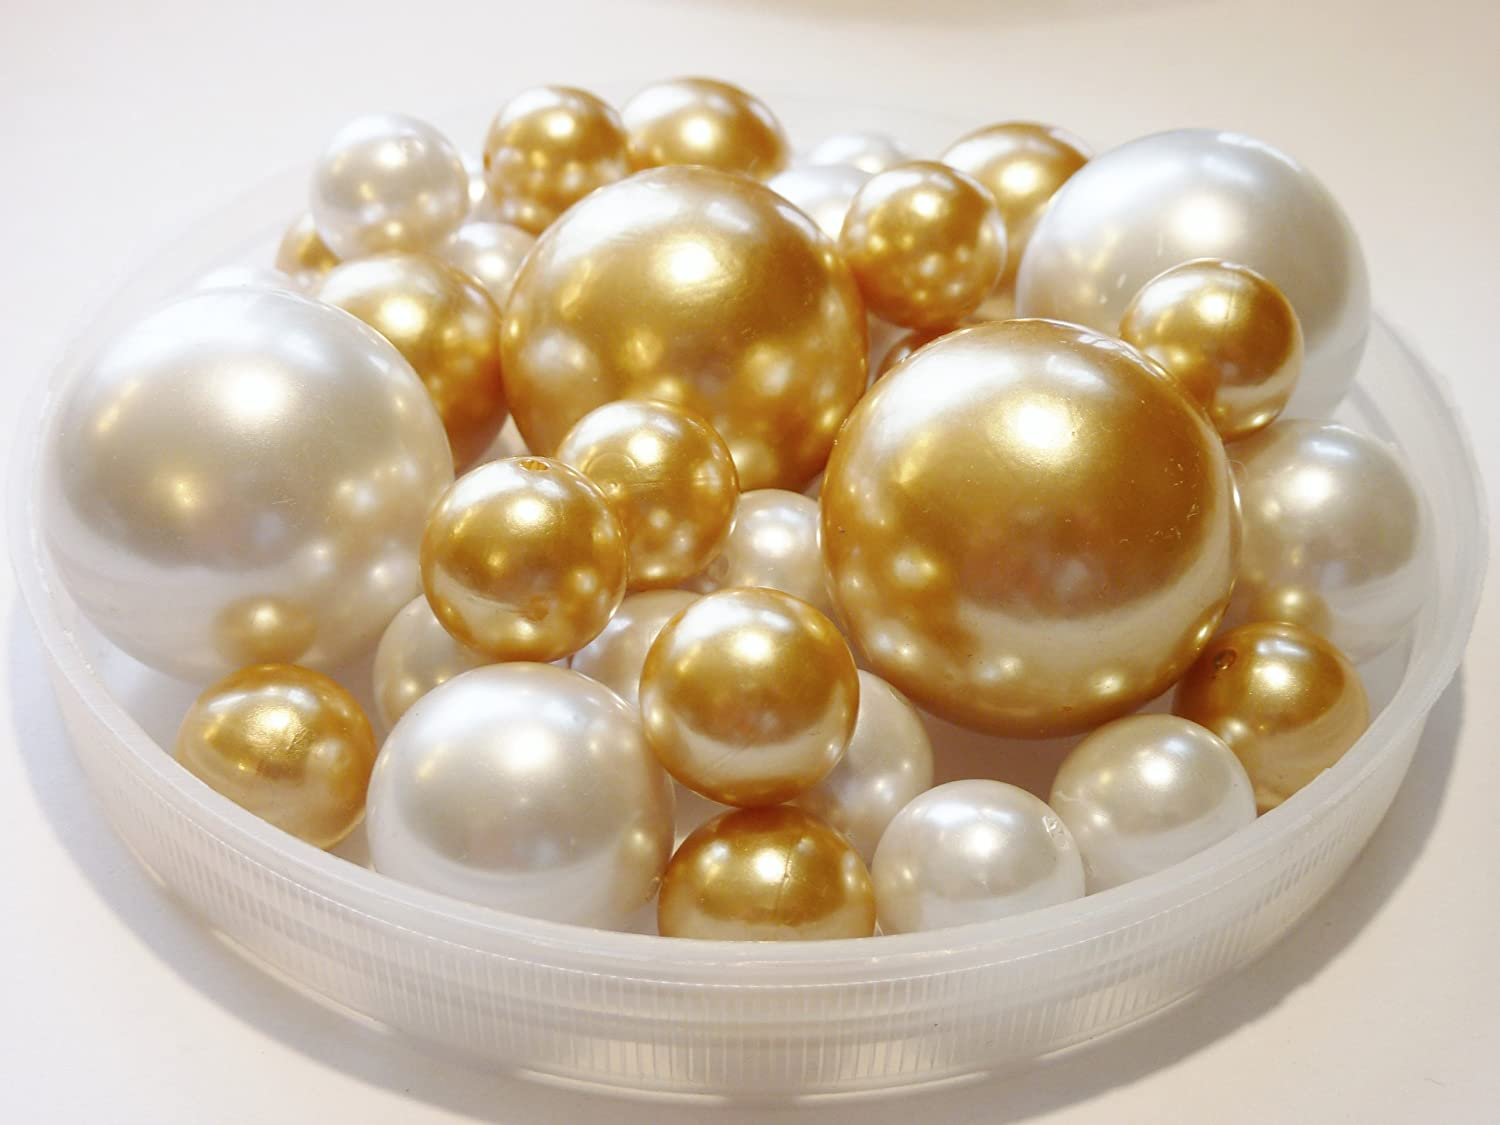 Amazon unique jumbo assorted sizes 80 pieces gold and white amazon unique jumbo assorted sizes 80 pieces gold and white pearls value pack vase fillers not including the transparent water gels for floating the reviewsmspy